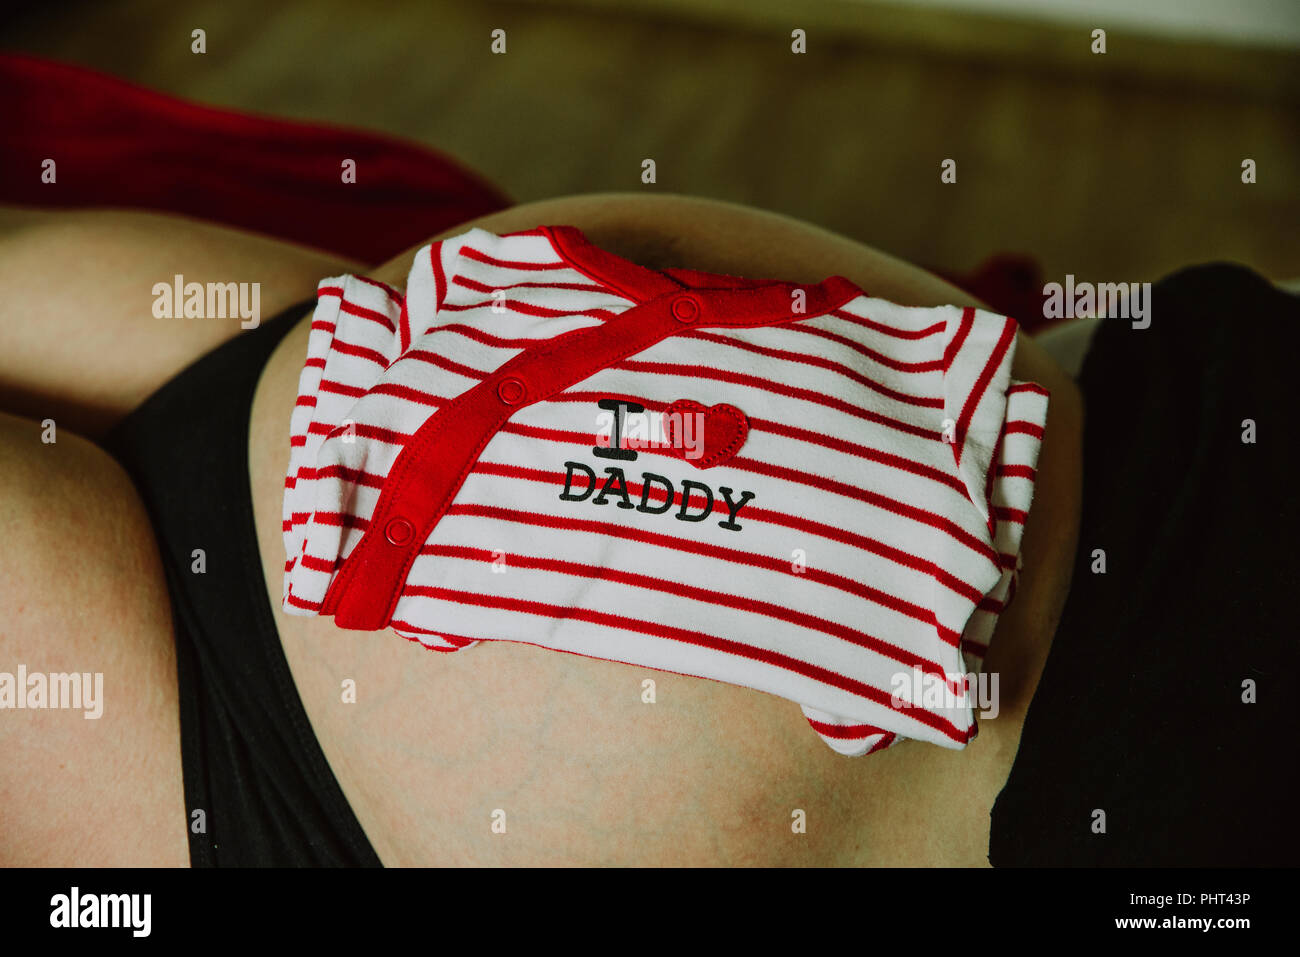 I love Daddy on rompers with a belly in the background - Stock Image